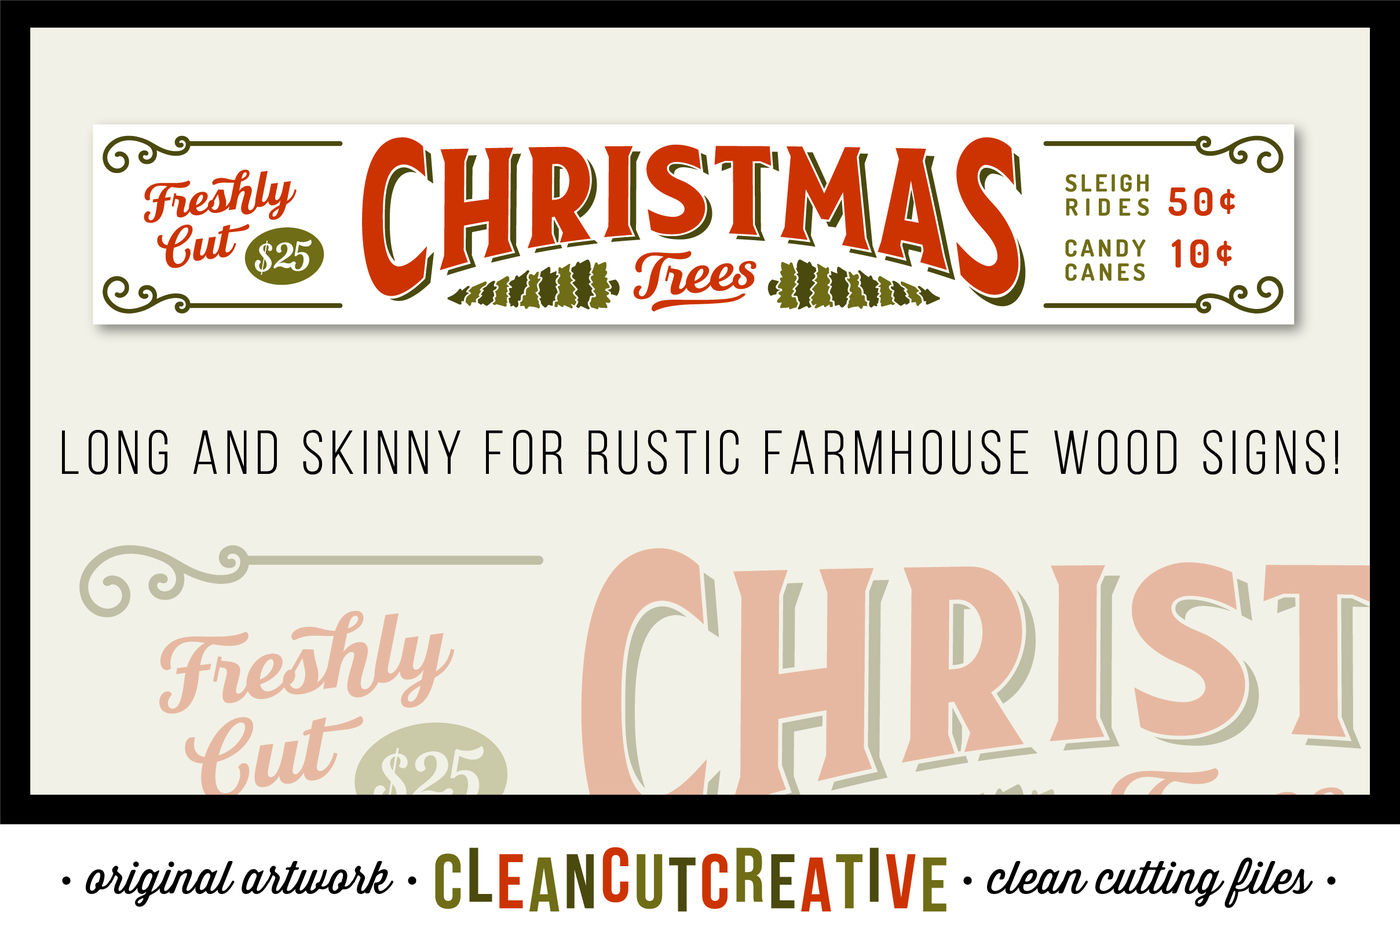 Freshly Cut Christmas Trees Long And Skinny Rustic Farm Wood Sign Svg Dxf Eps Png Cricut Silhouette Clean Cutting Files By Cleancutcreative Thehungryjpeg Com